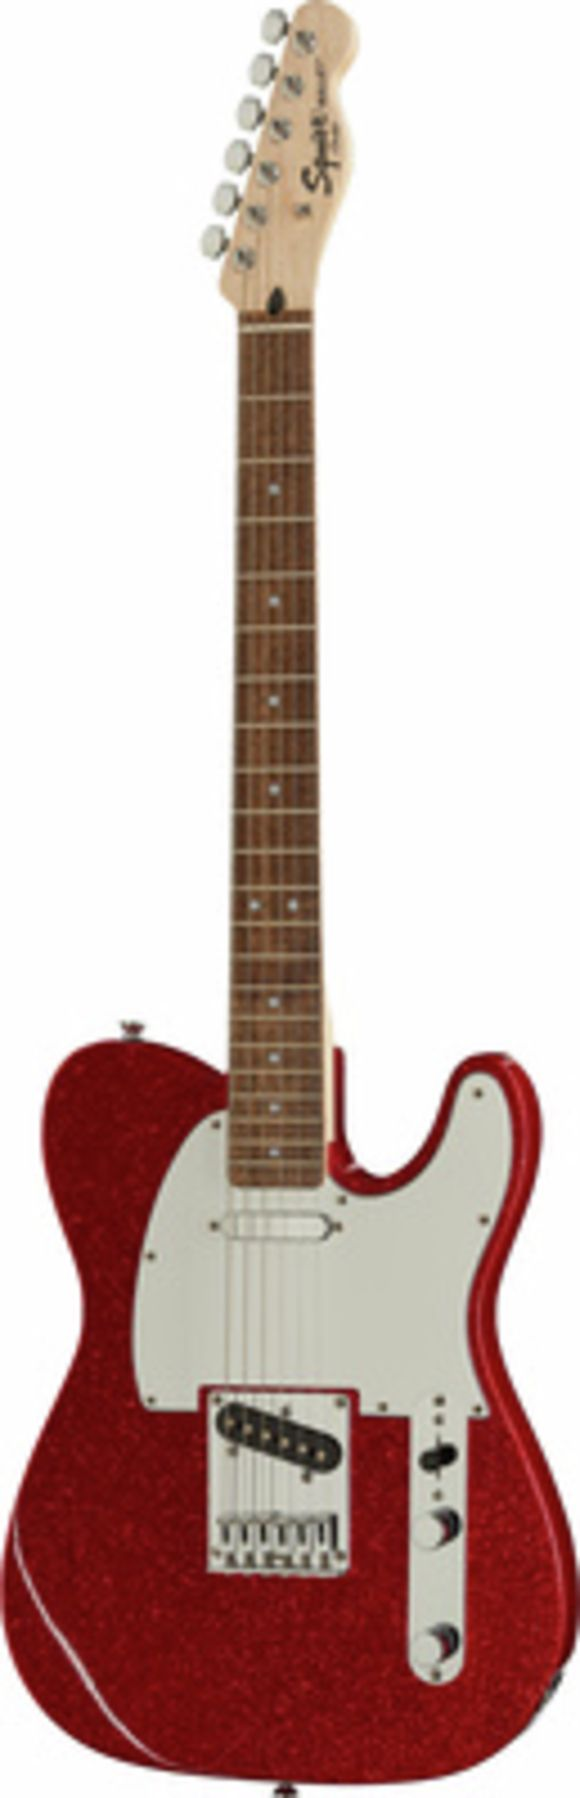 SQ Bullet Tele LRL Red SPKL Fender